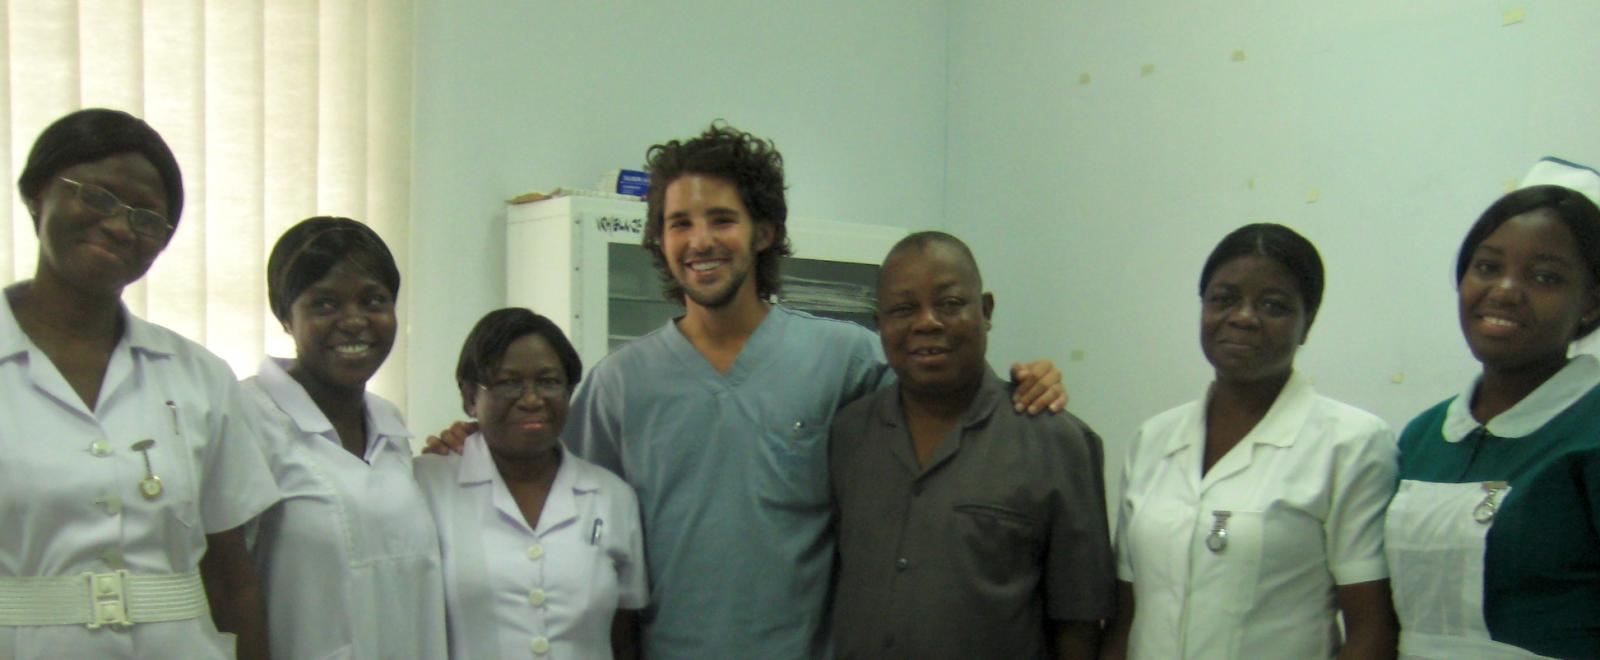 An intern on a Dentistry Project in Ghana with local medical staff at a clinic.